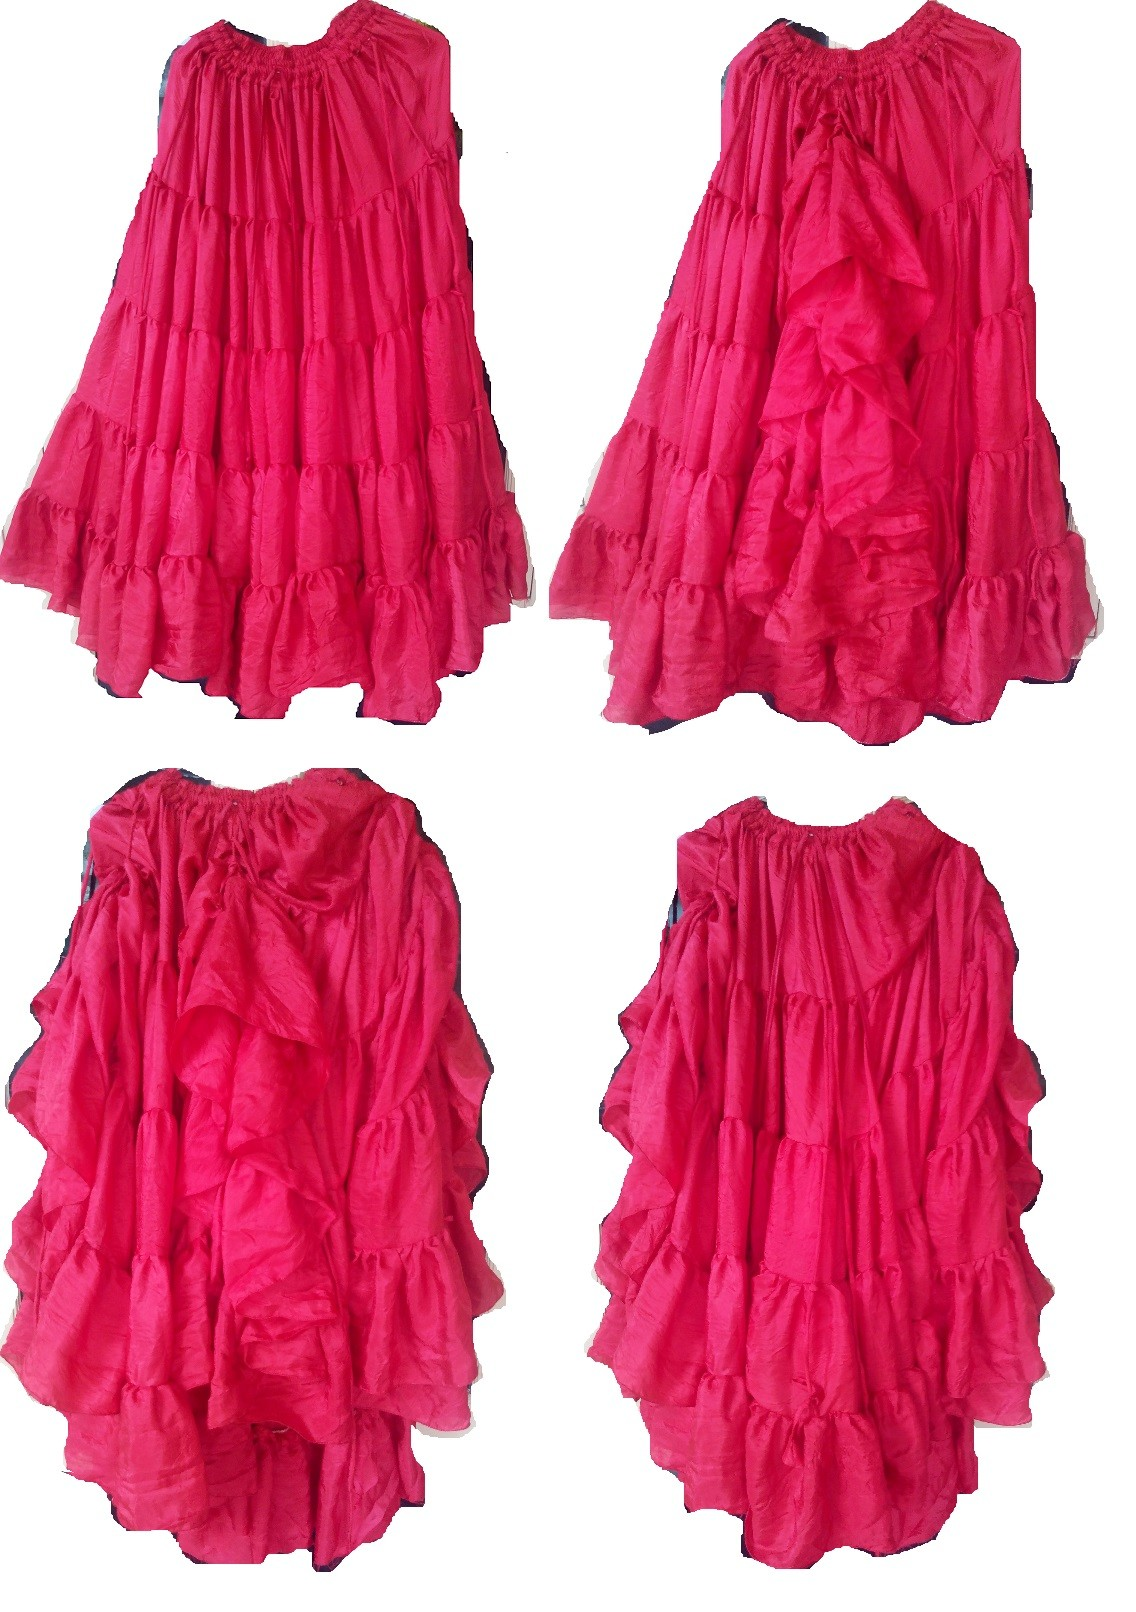 b6e70072500 Belly dance 25 yard silk Magic gypsy skirt with your measurement